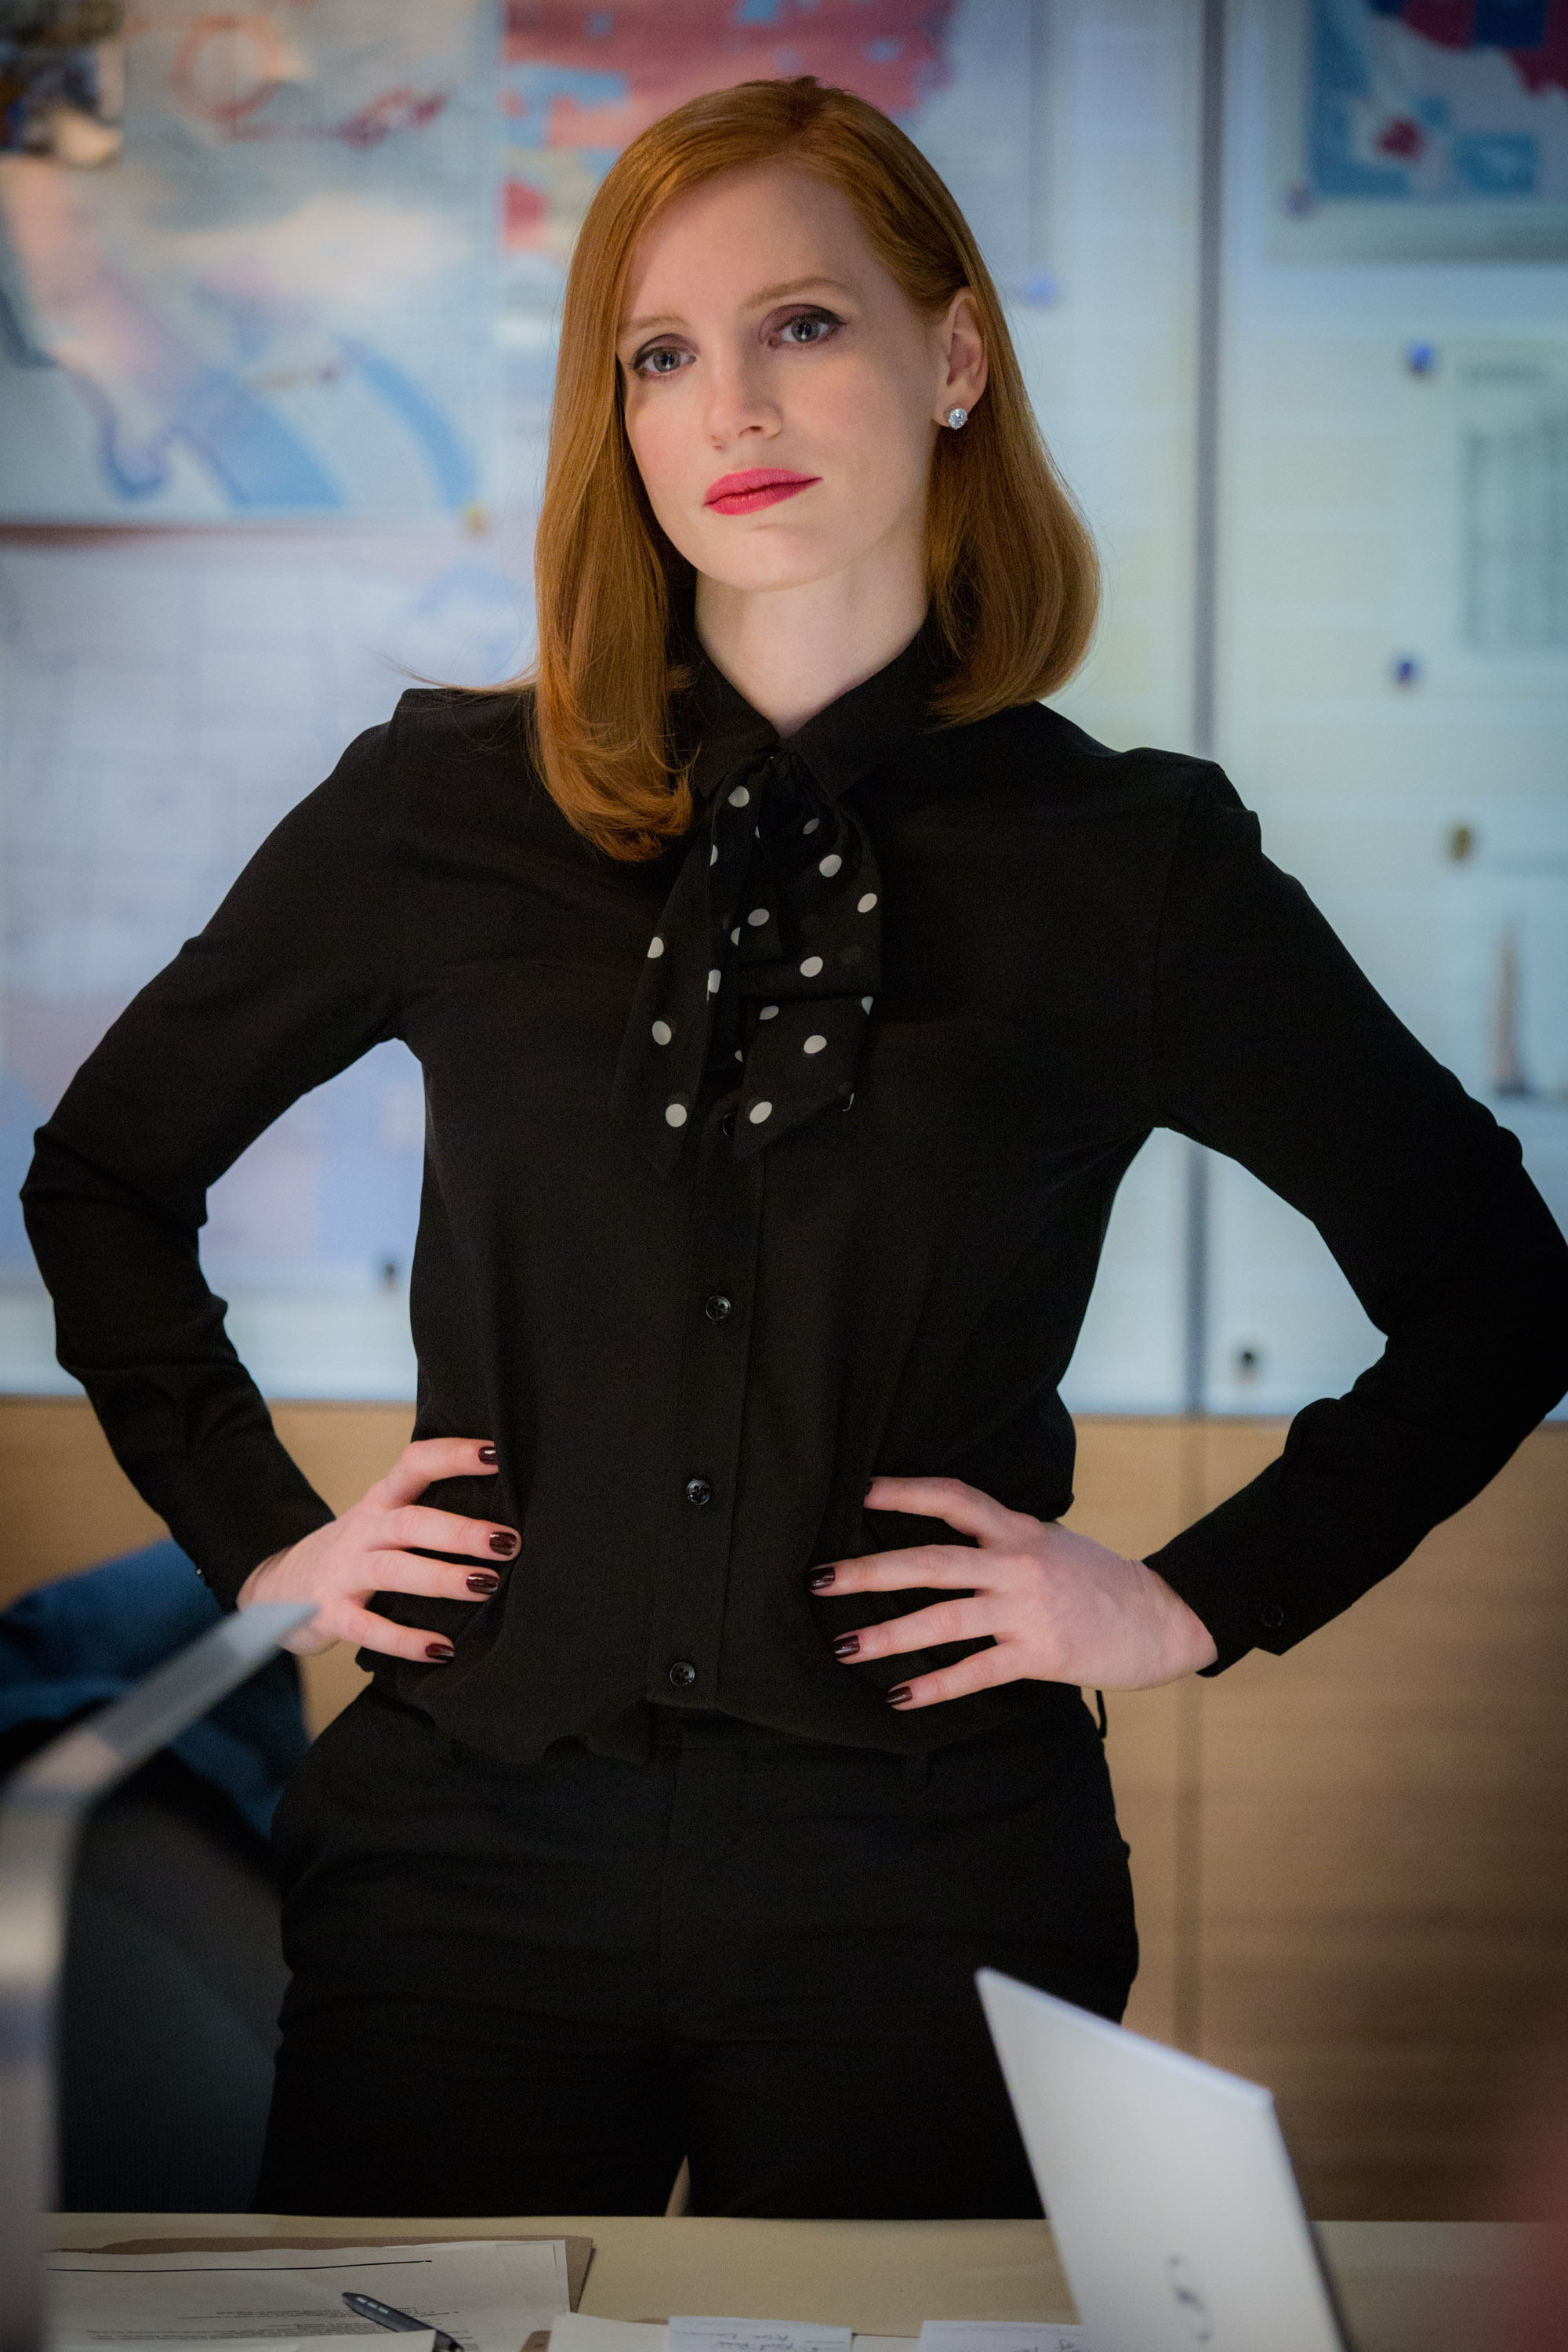 Jessica Chastain stars in Miss Sloane. Photo Credit: Kerry Hayes © 2016 EuropaCorp – France 2 Cinema